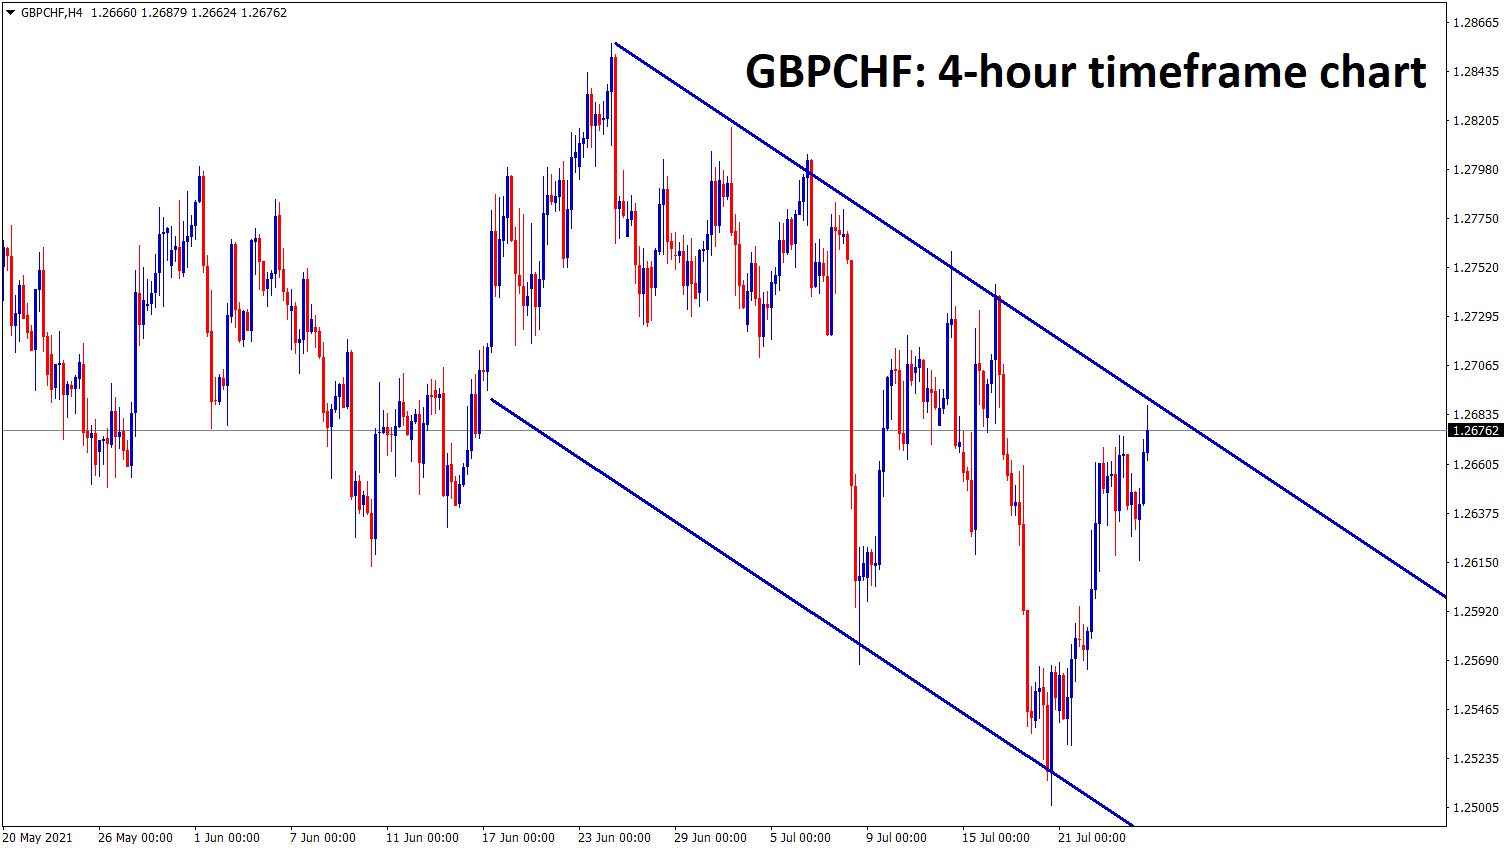 GBPCHF is at the lower high of the descending channel range wait for breakout or reversal